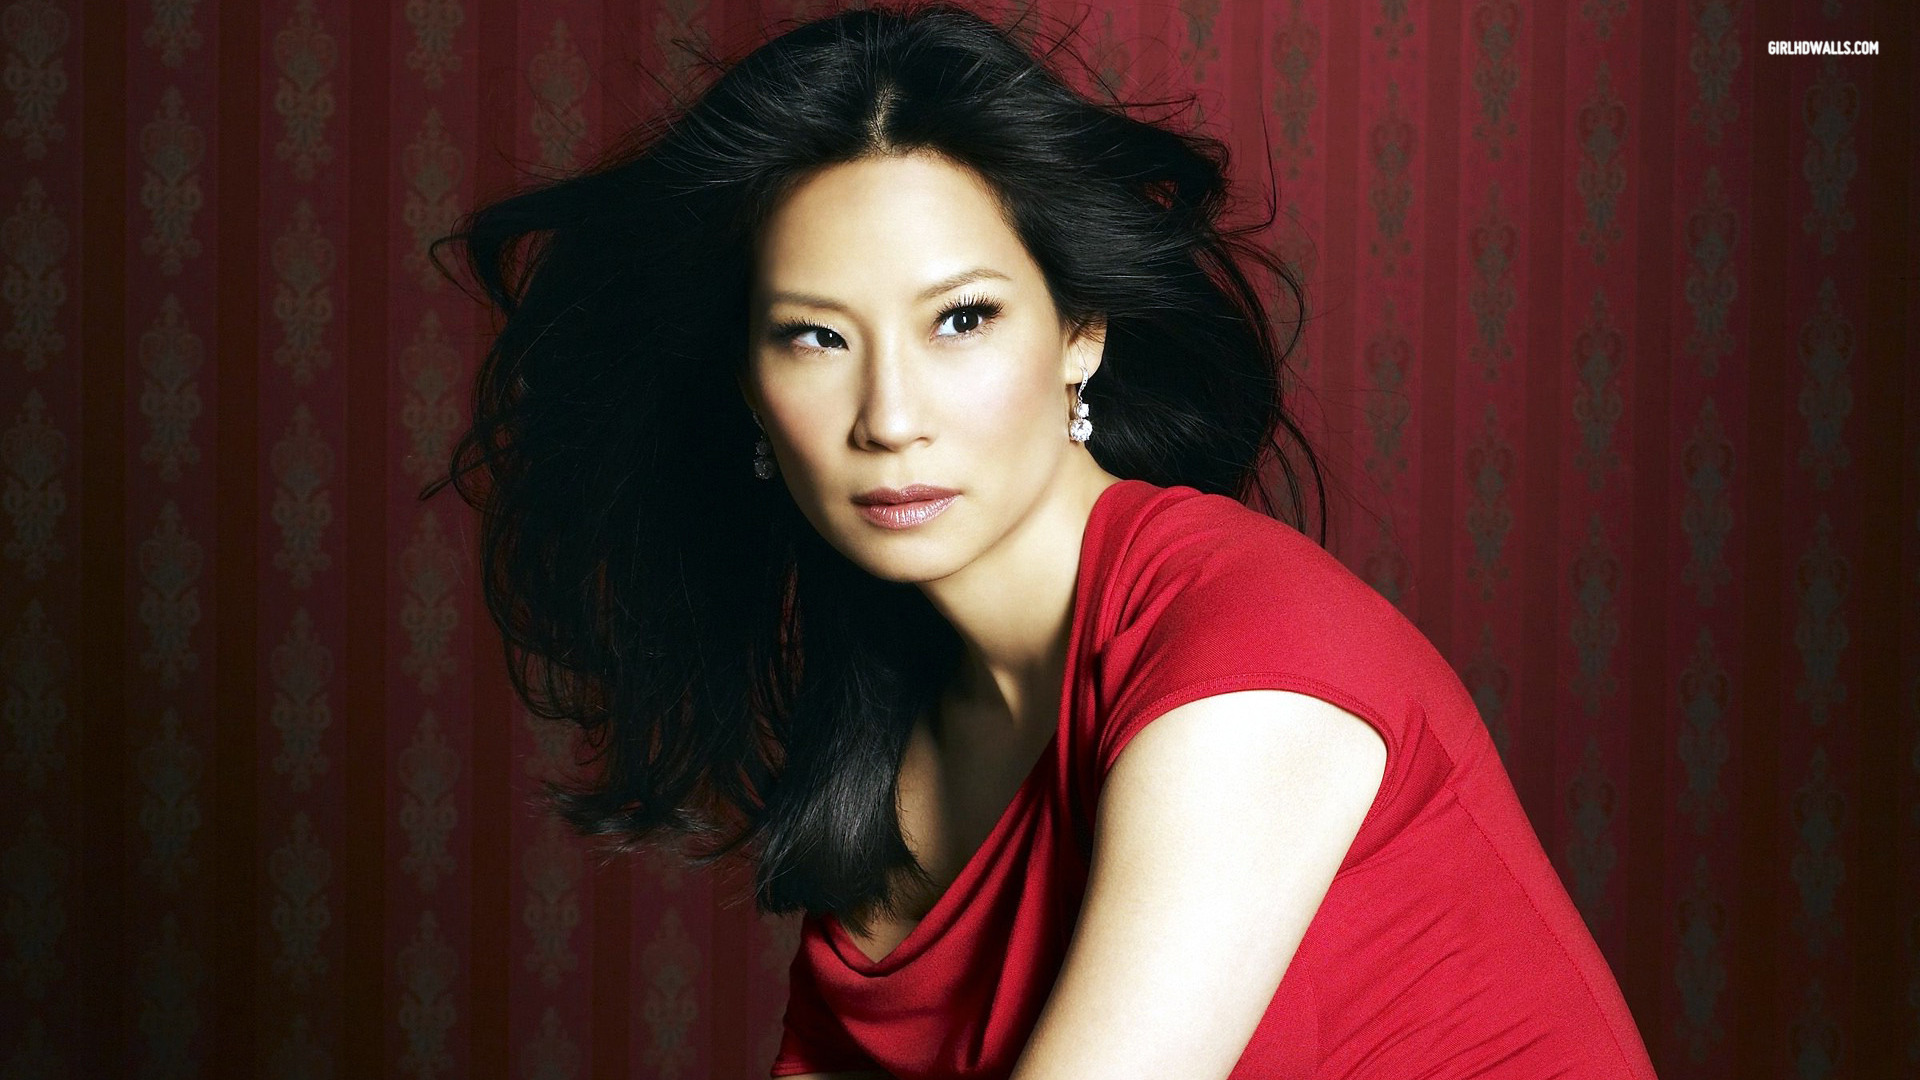 lucy liu free wallpaper - photo #26